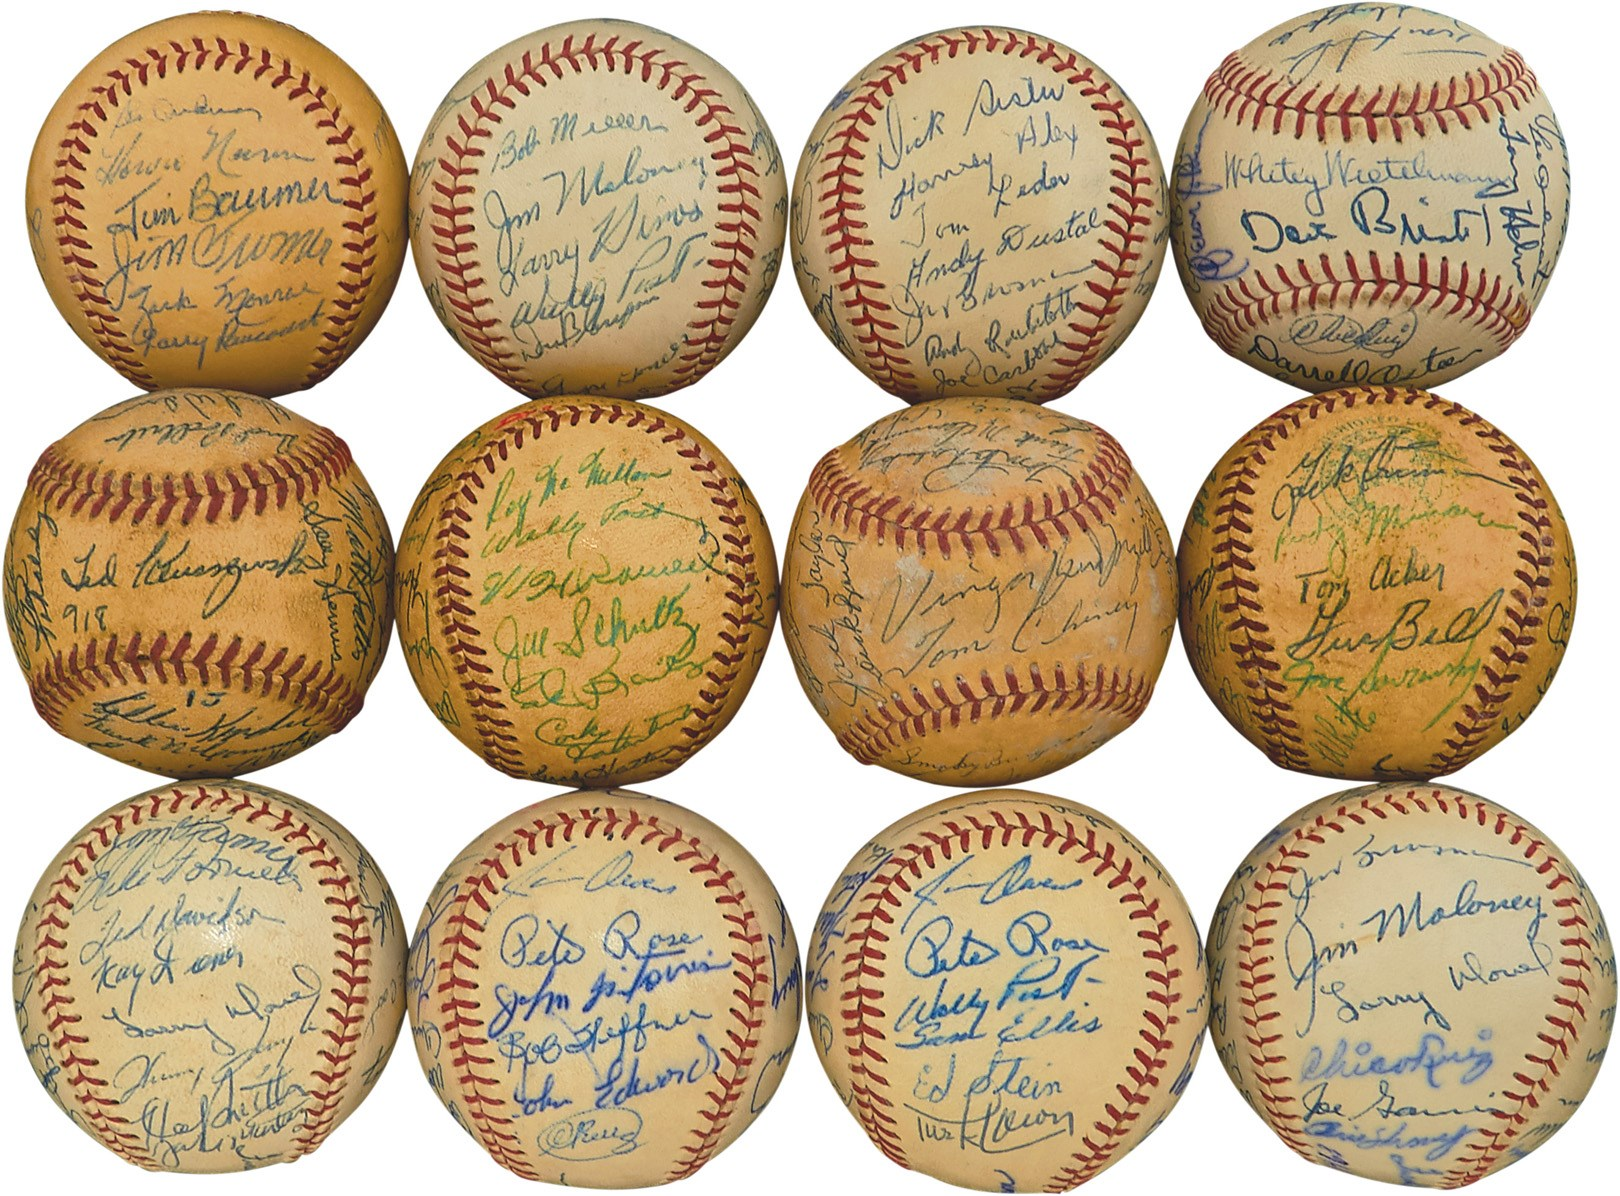 1954-67 Cincinnati Redlegs Team-Signed Baseballs w/(2) 1963 Rose Rookies (12)